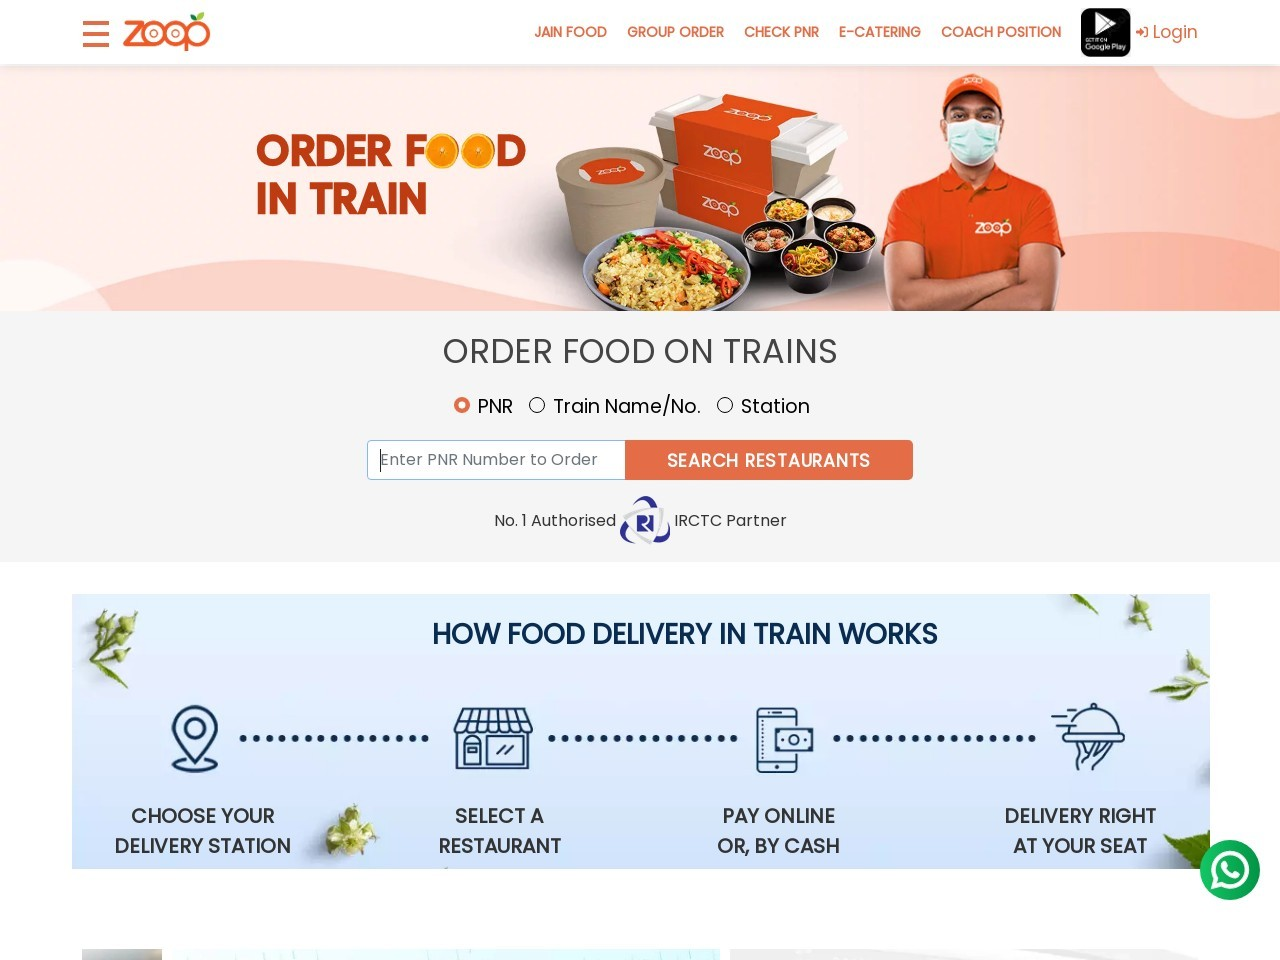 Order Meals on Rail Online at Nagpur Railway Station | Delivery in Train | IRCTC Zoop eCatering